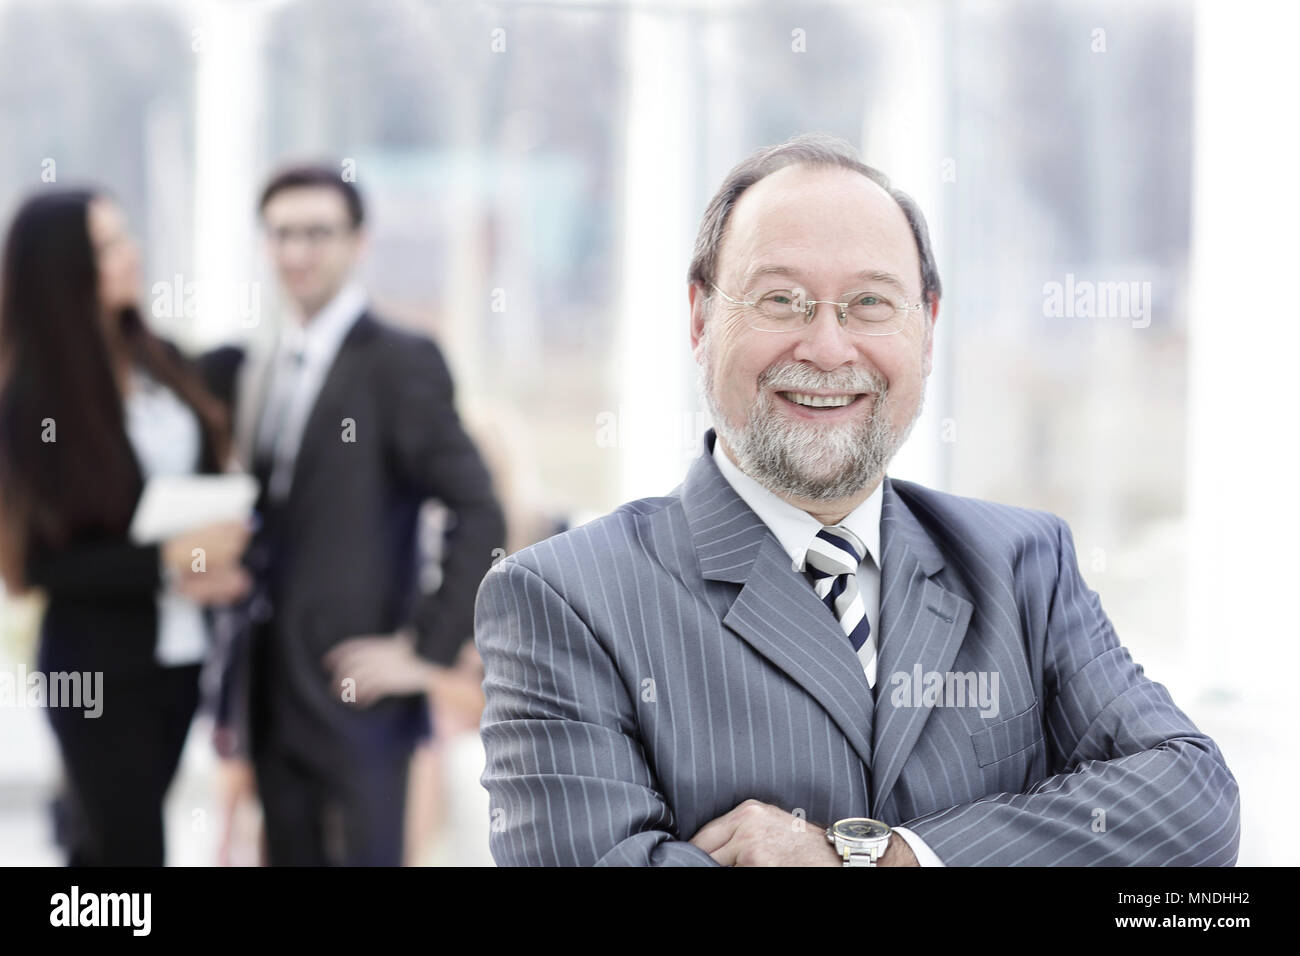 Business man at the office with a group behind him - Stock Image